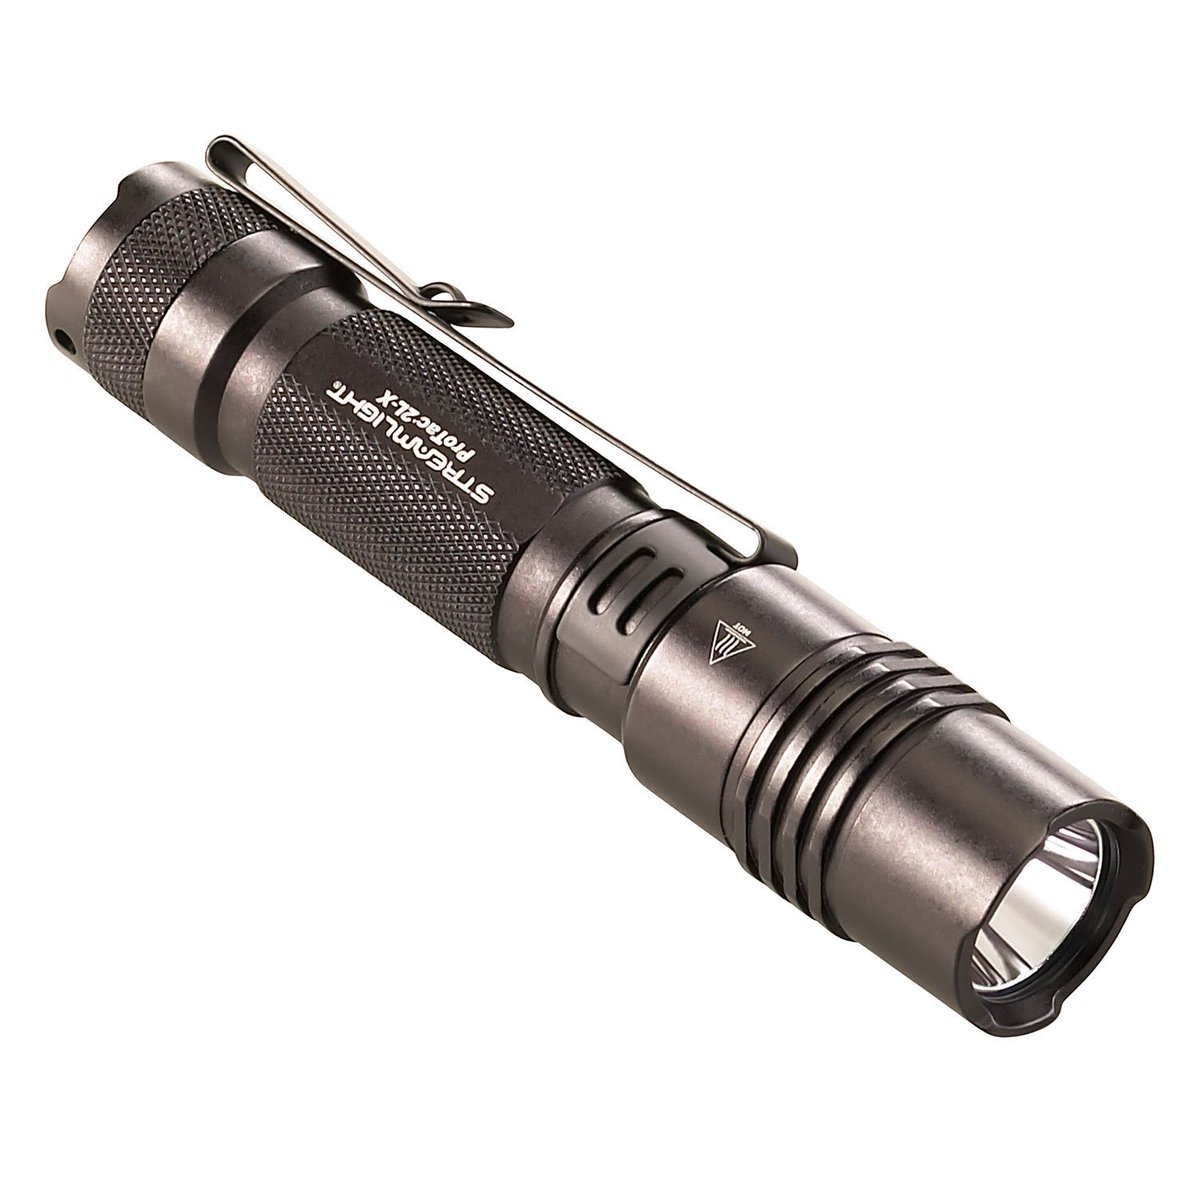 Want to win a new flashlight? We are giving away a new Streamlight ProTac 2L-X Dual-Fuel Tactical Light. For your chance to win retweet and tag a friend to follow our page. Deadline to enter is January 26.  #contest #winner #flashlight #2a #rangetime #comeshootwithus #tagafriend <br>http://pic.twitter.com/OeuCUzHAfZ